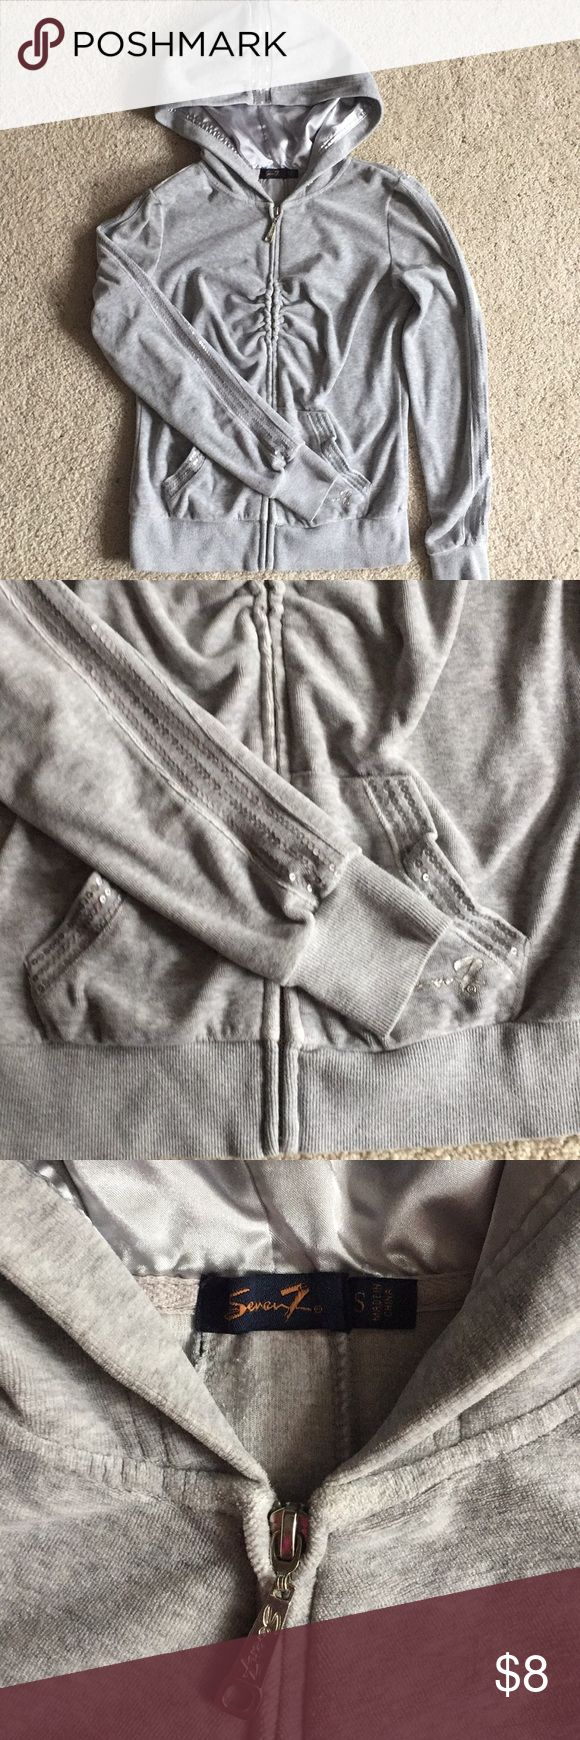 Seven7 Silver hoodie Seven7 silver hoodie zips up. In good condition. No flaws siZe Small Seven7 Jackets & Coats